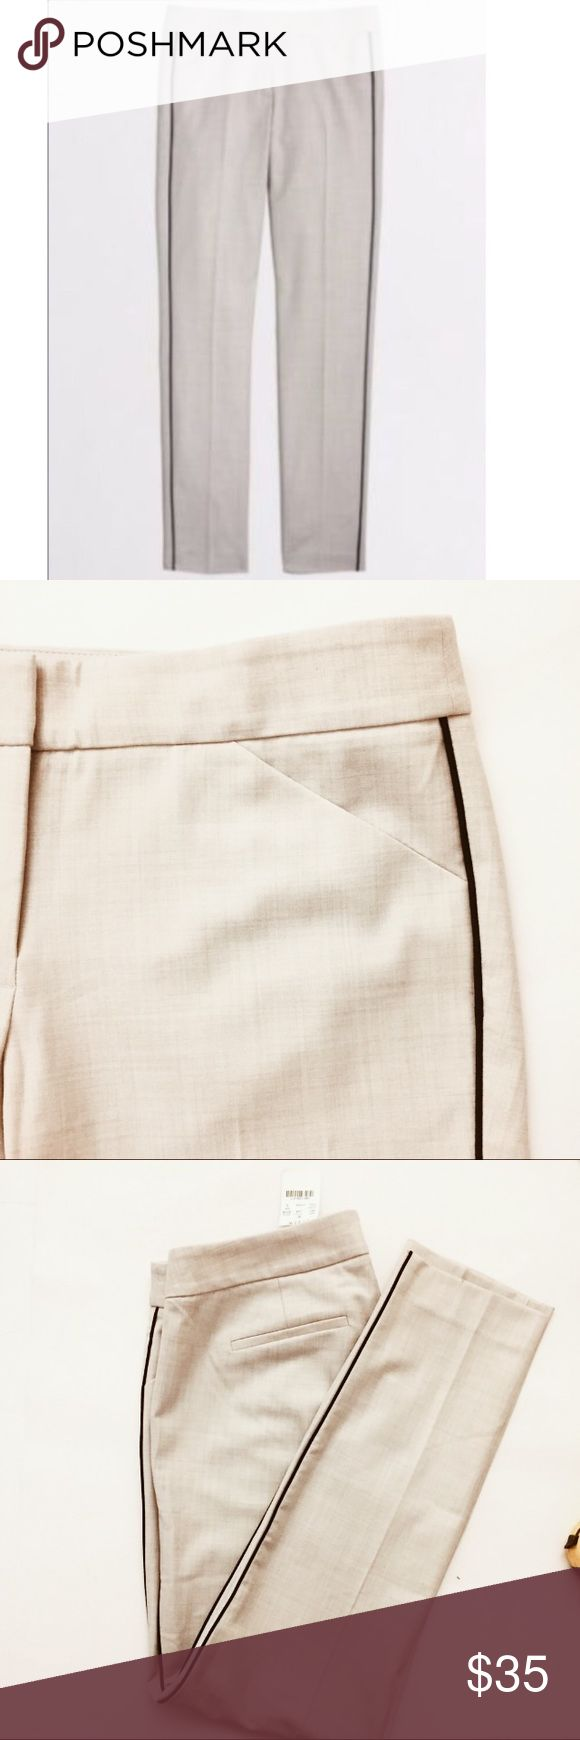 """J. Crew Stretch Tuxedo Stripe Pants Size 6, heather gray with black stripe, waist 32"""", inseam 29"""", front rise 10"""", leg opening 6"""", poly/wool stretch blend, light weight, new with tags. J. Crew Pants"""